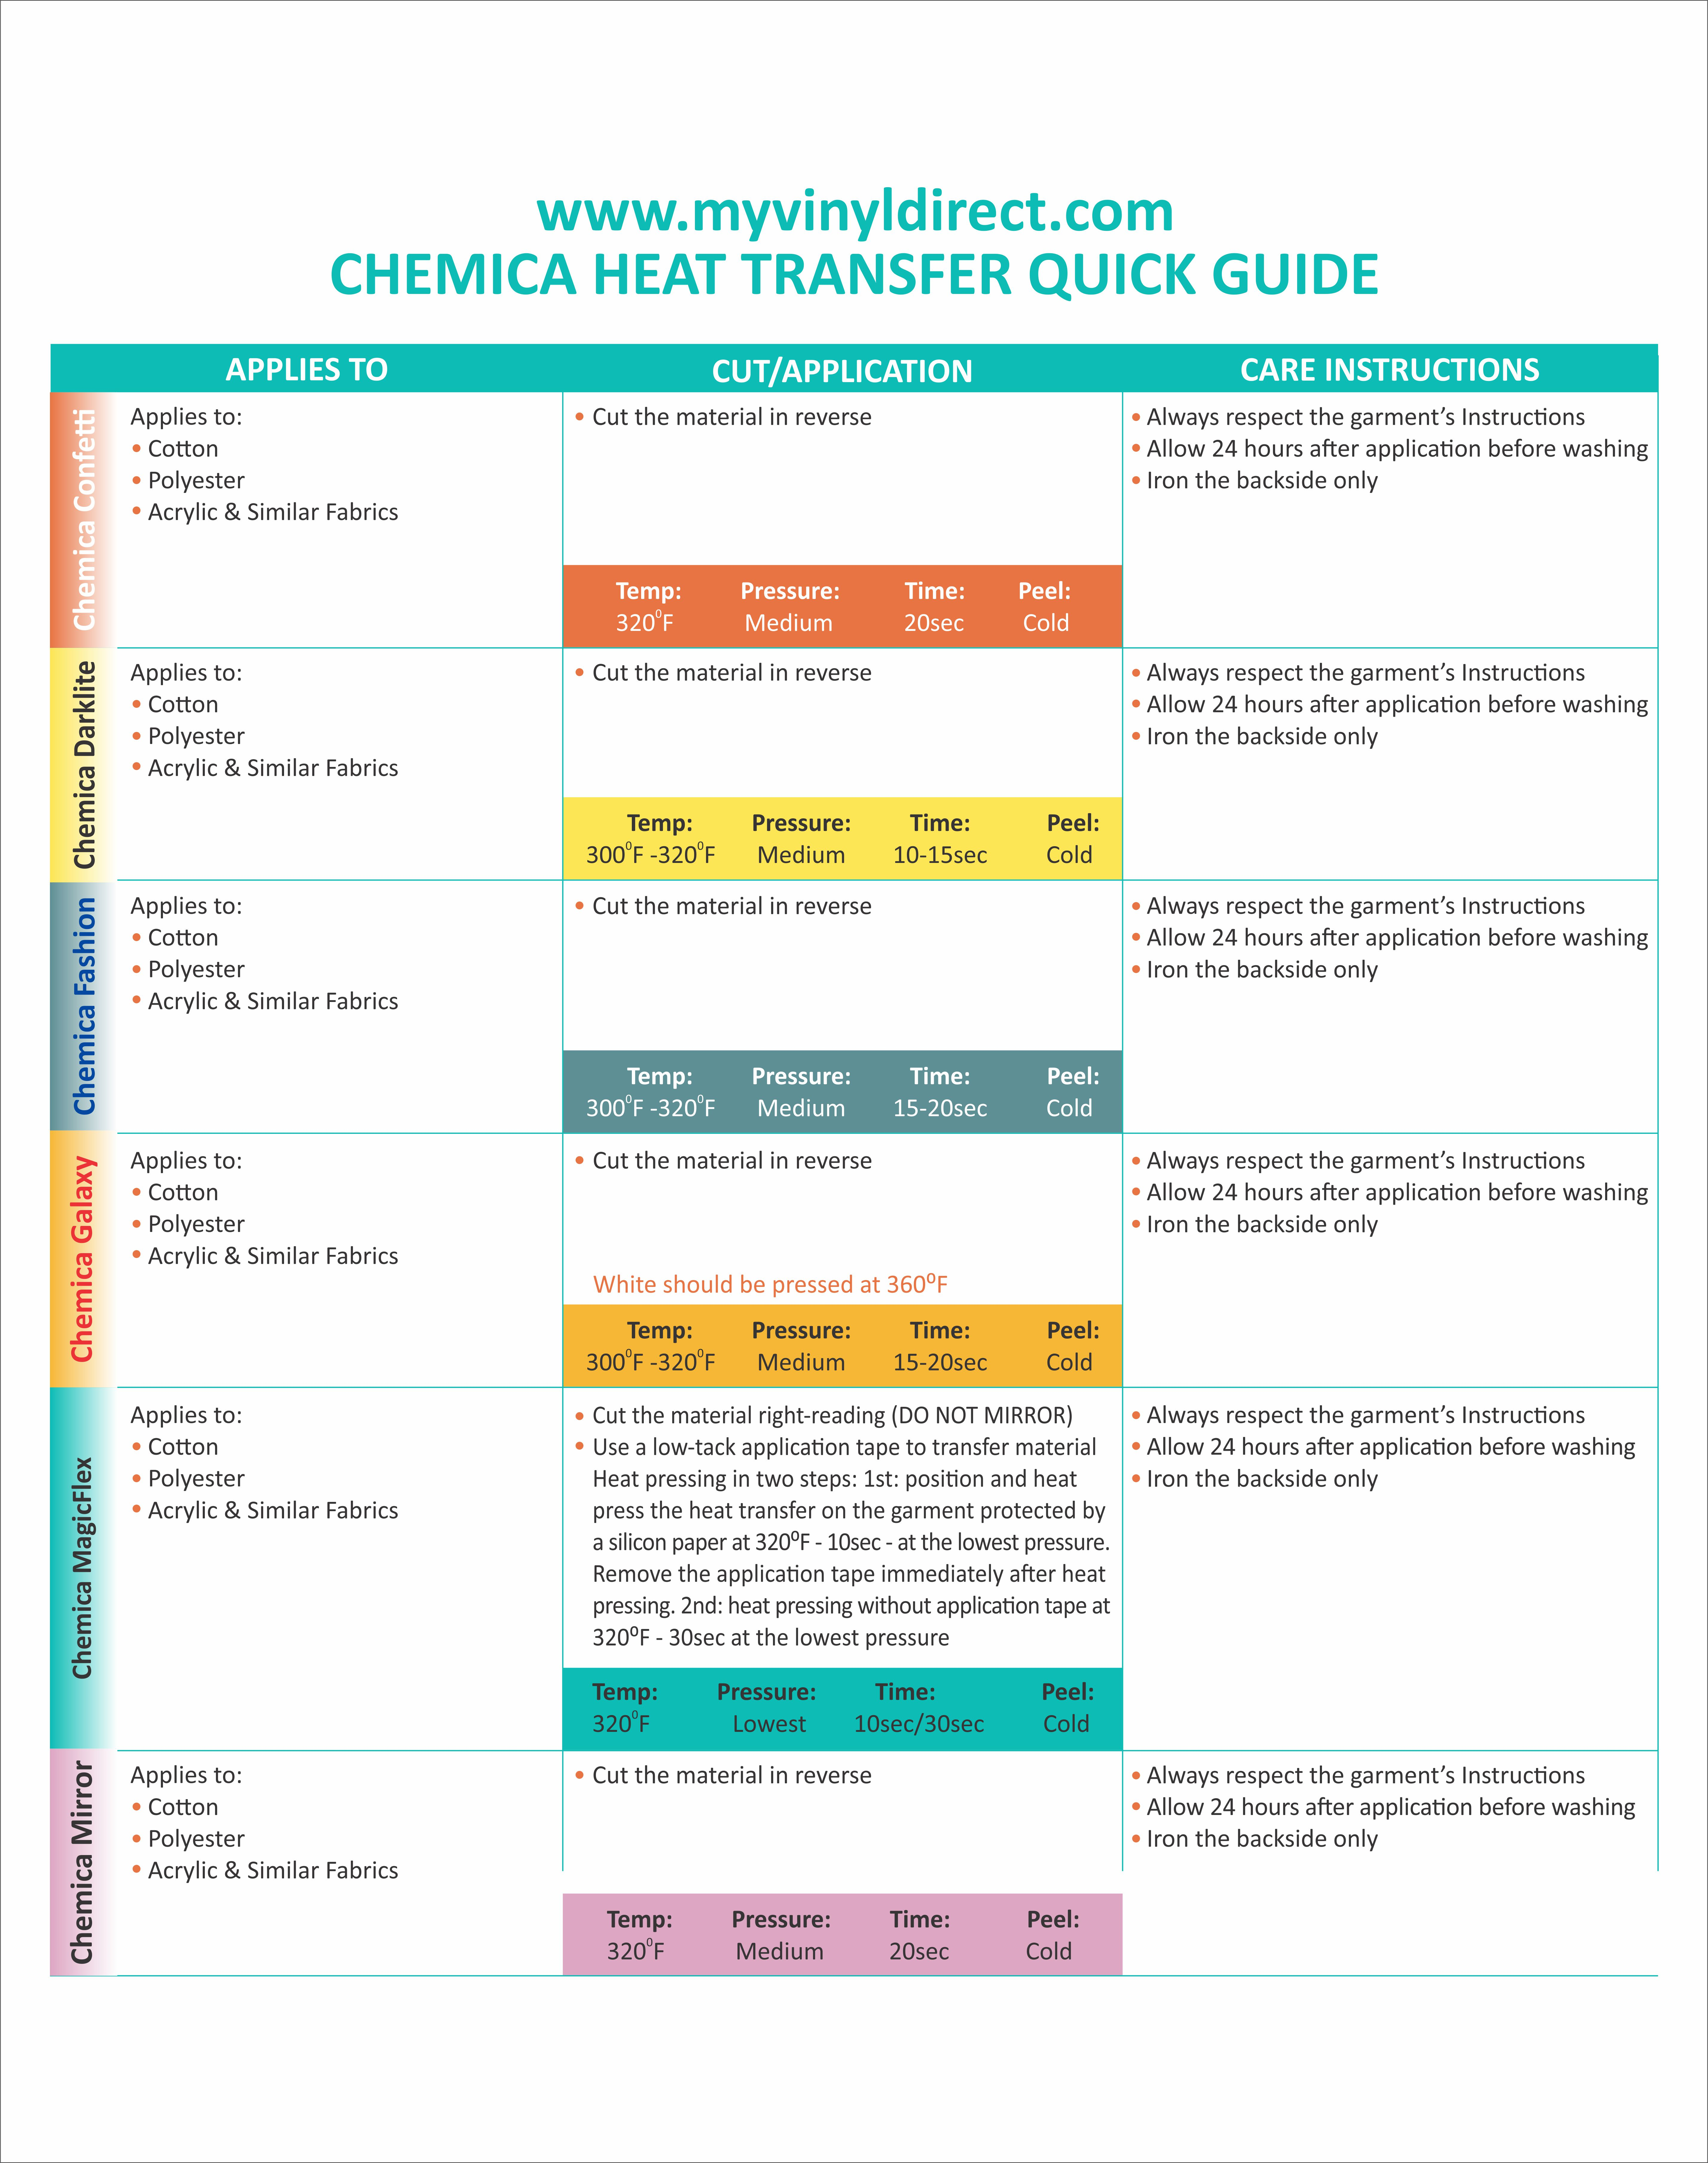 my-vinyl-direct-chemica-quick-guide.jpg